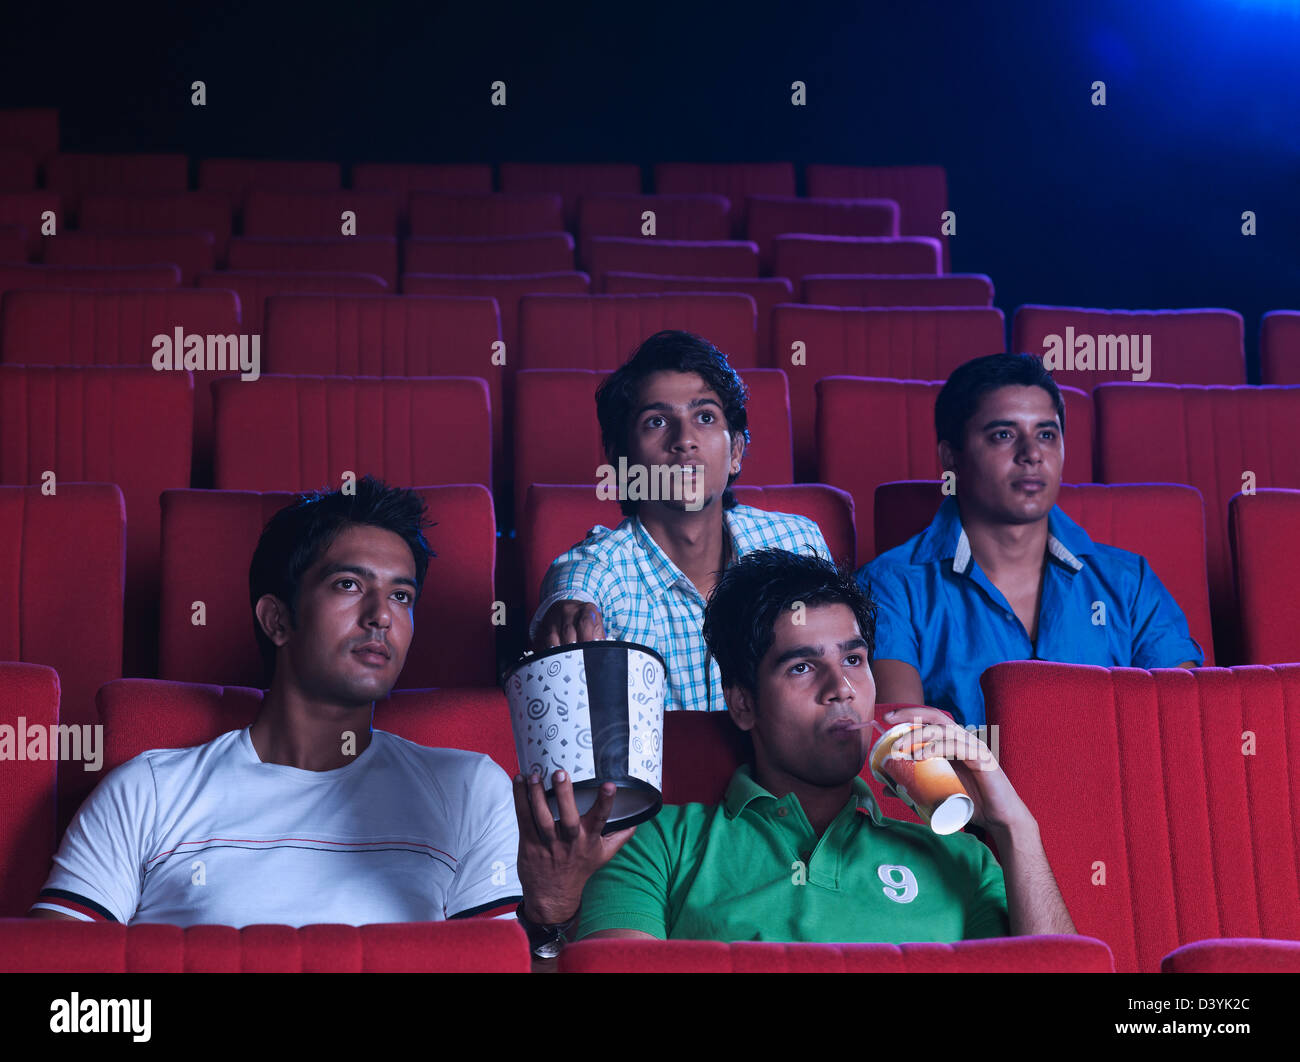 Youngsters enjoying movie with popcorns in a cinema hall Stock Photo